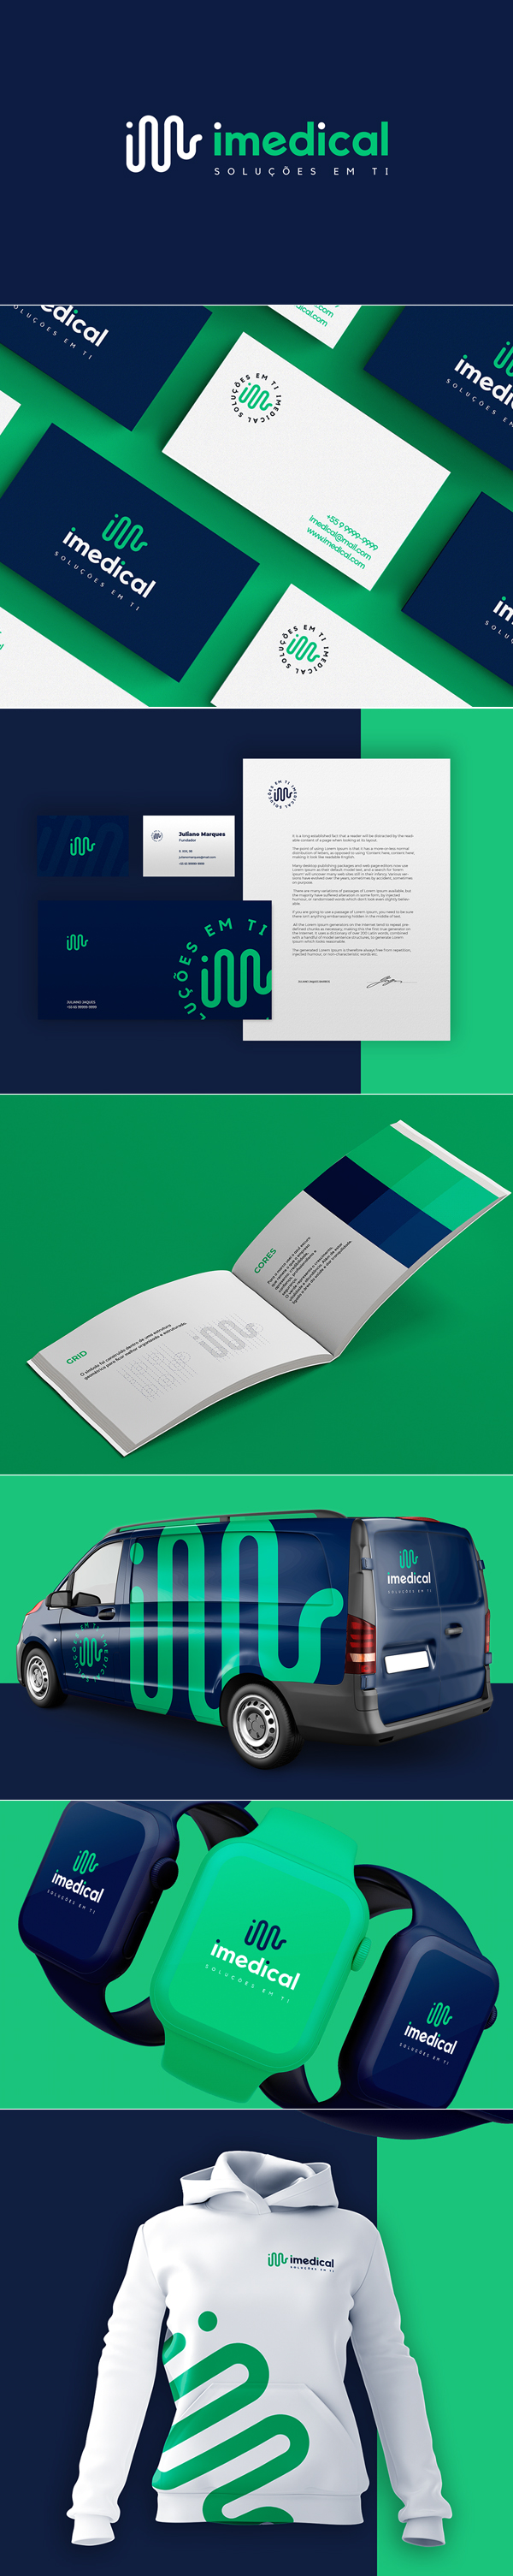 iMedical Visual Identity by Marina Gomes